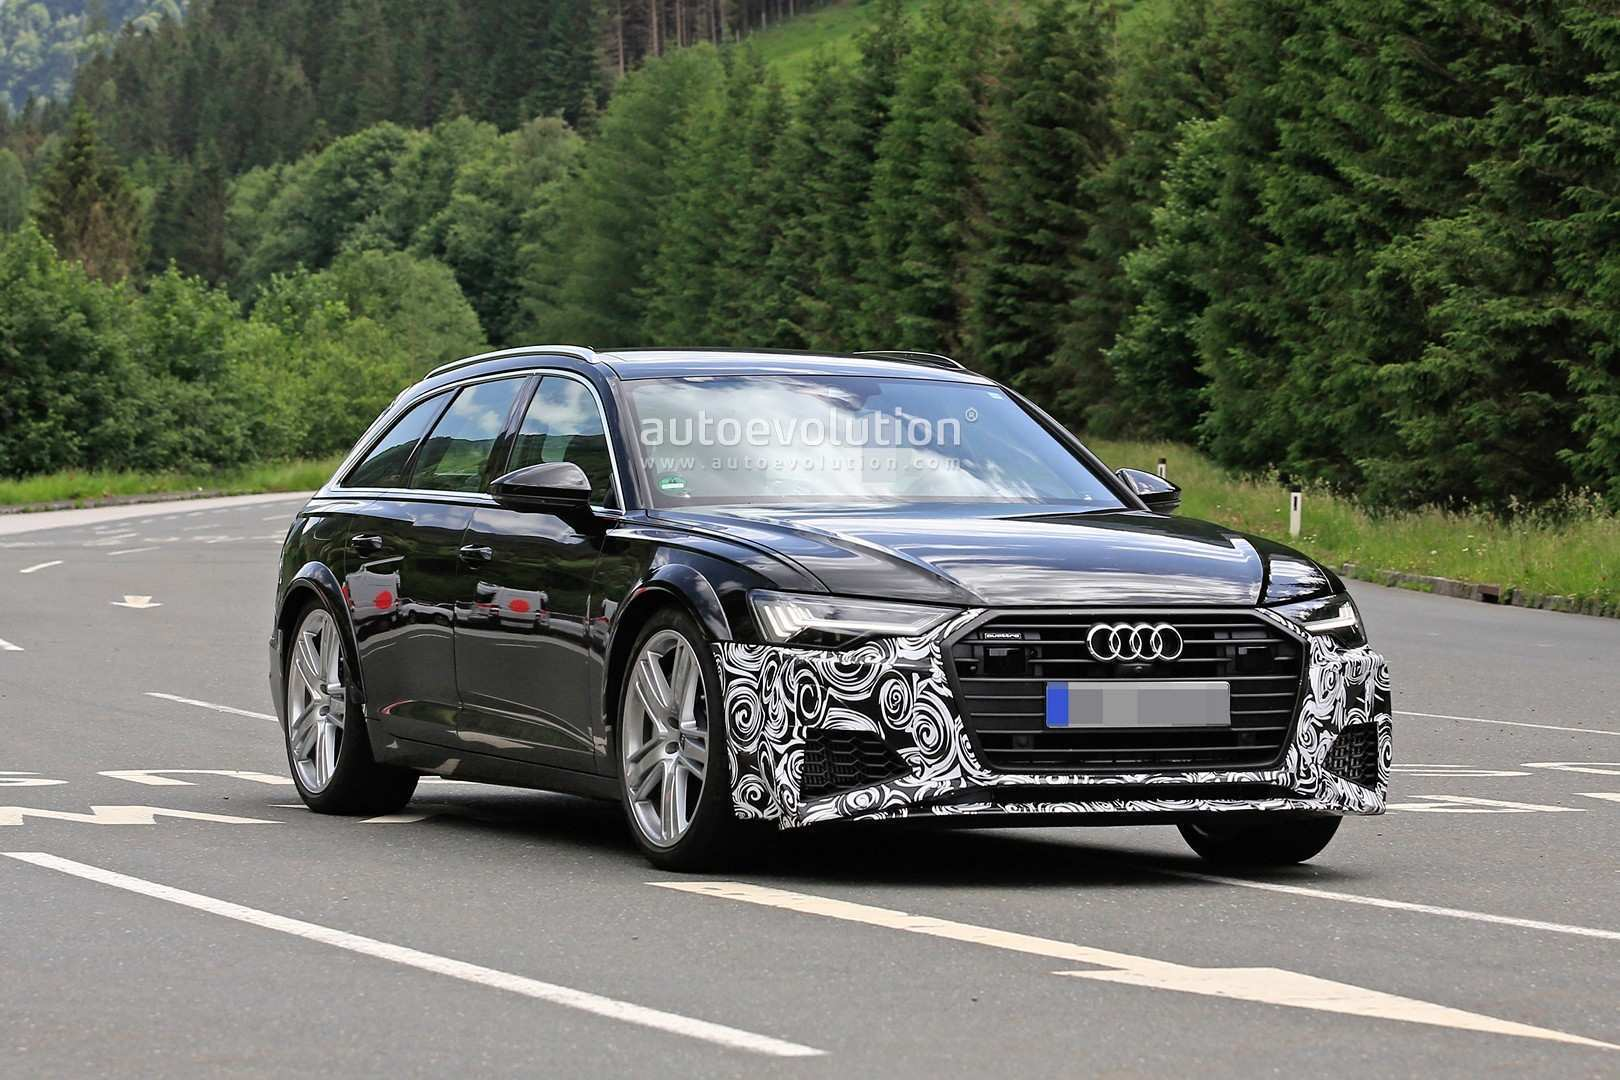 95 All New 2020 The Audi A6 Rumors